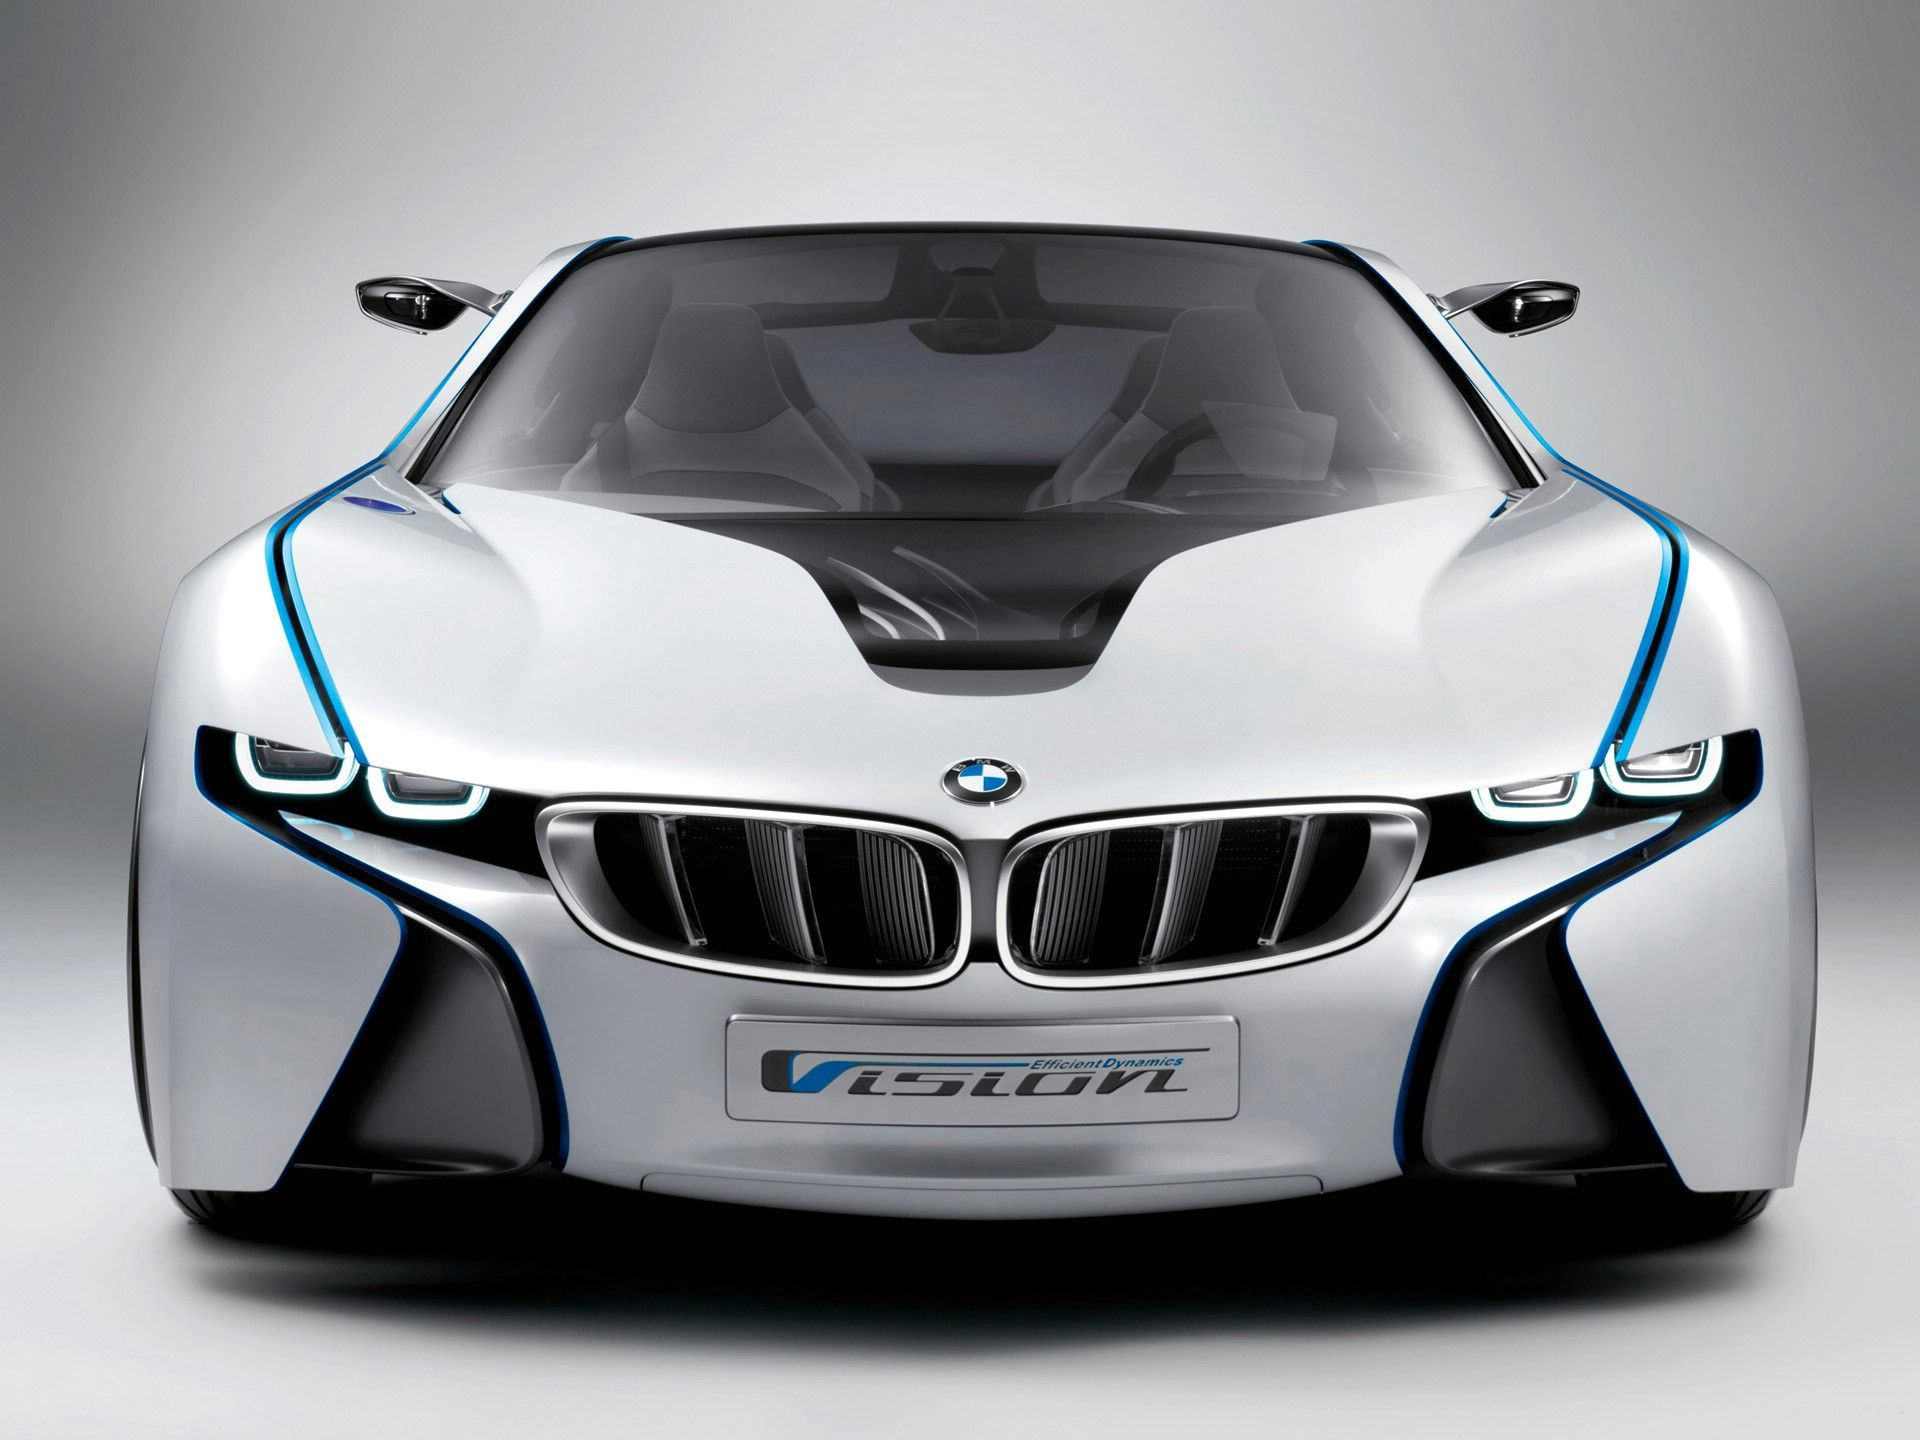 Charmant Beautiful Bmw Cars Wallpapers 23 With Beautiful Bmw Cars Wallpapers